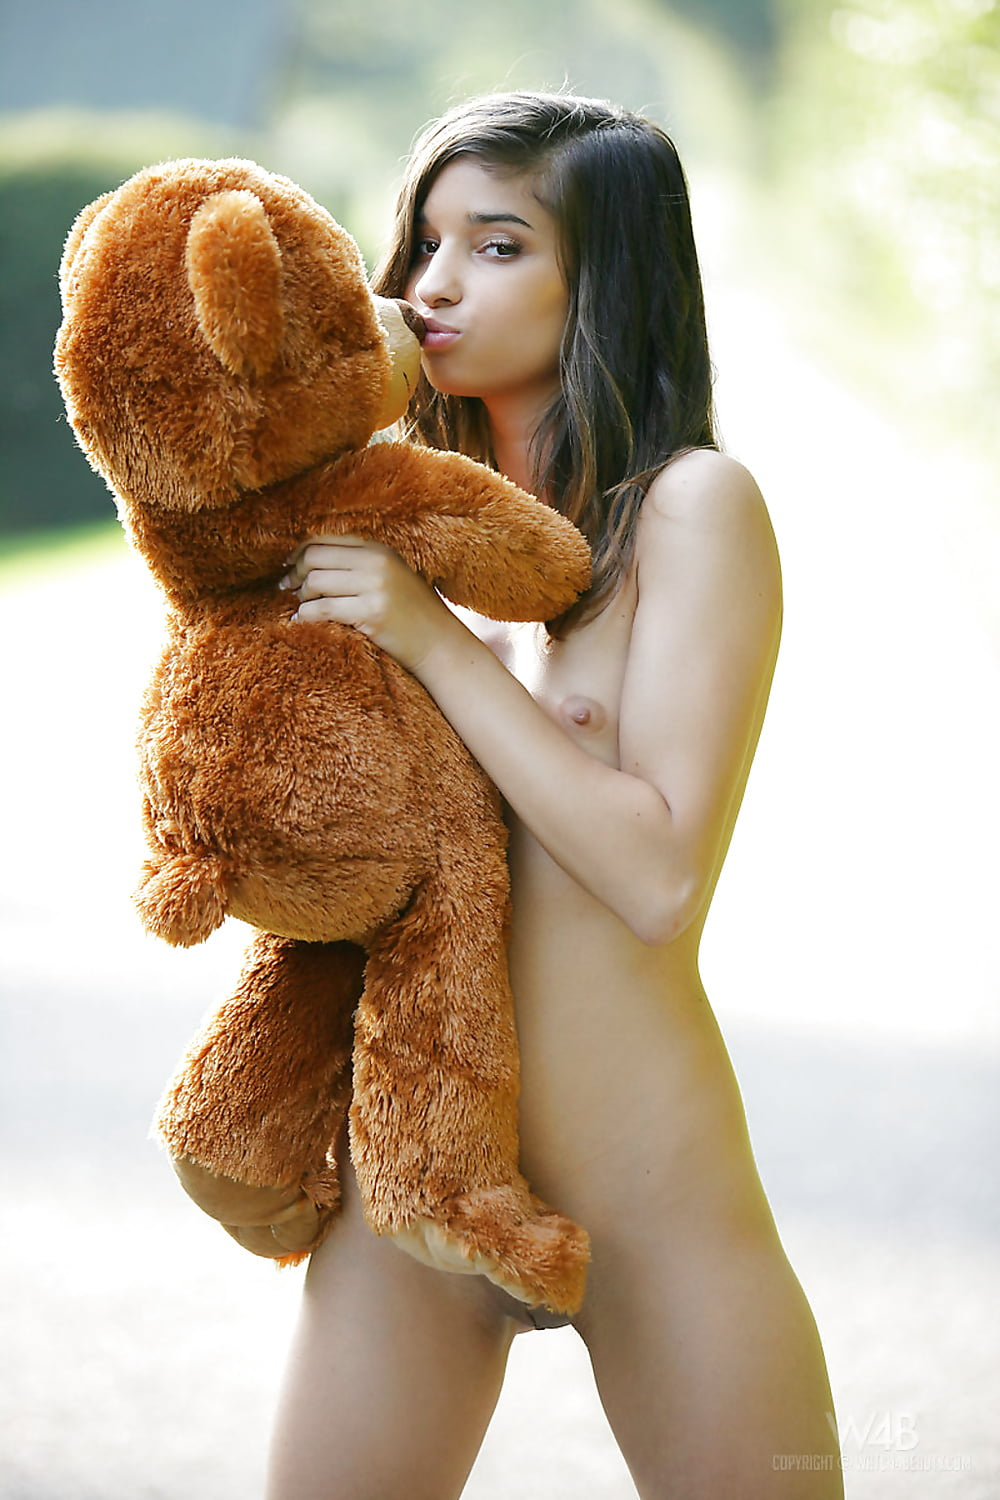 Teddy bear blowjob